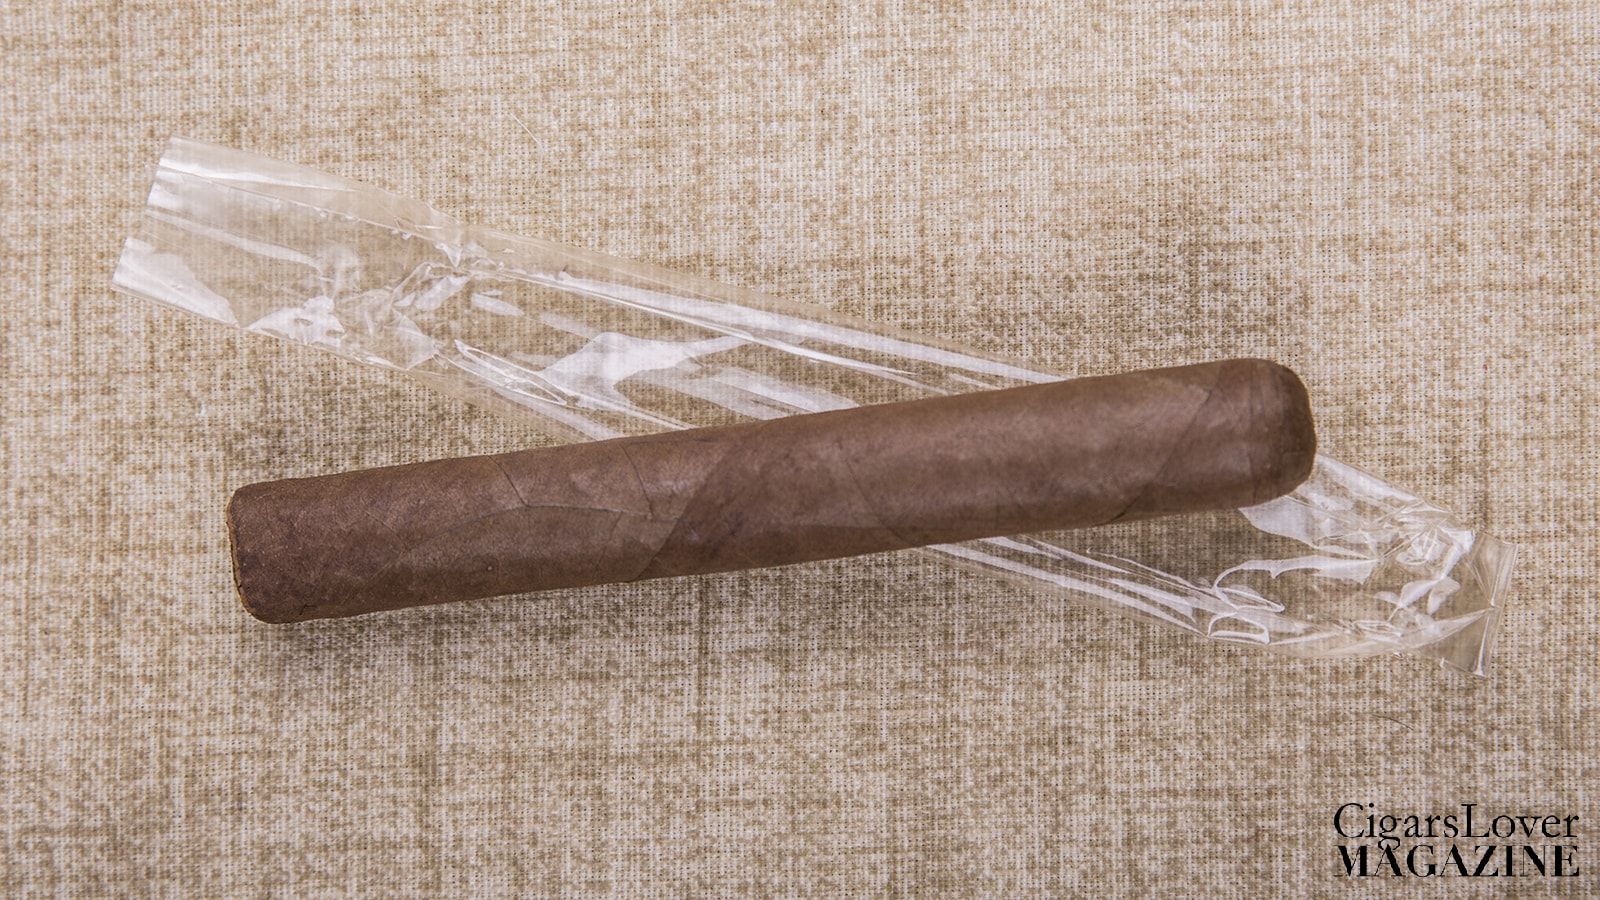 cellophane cigar